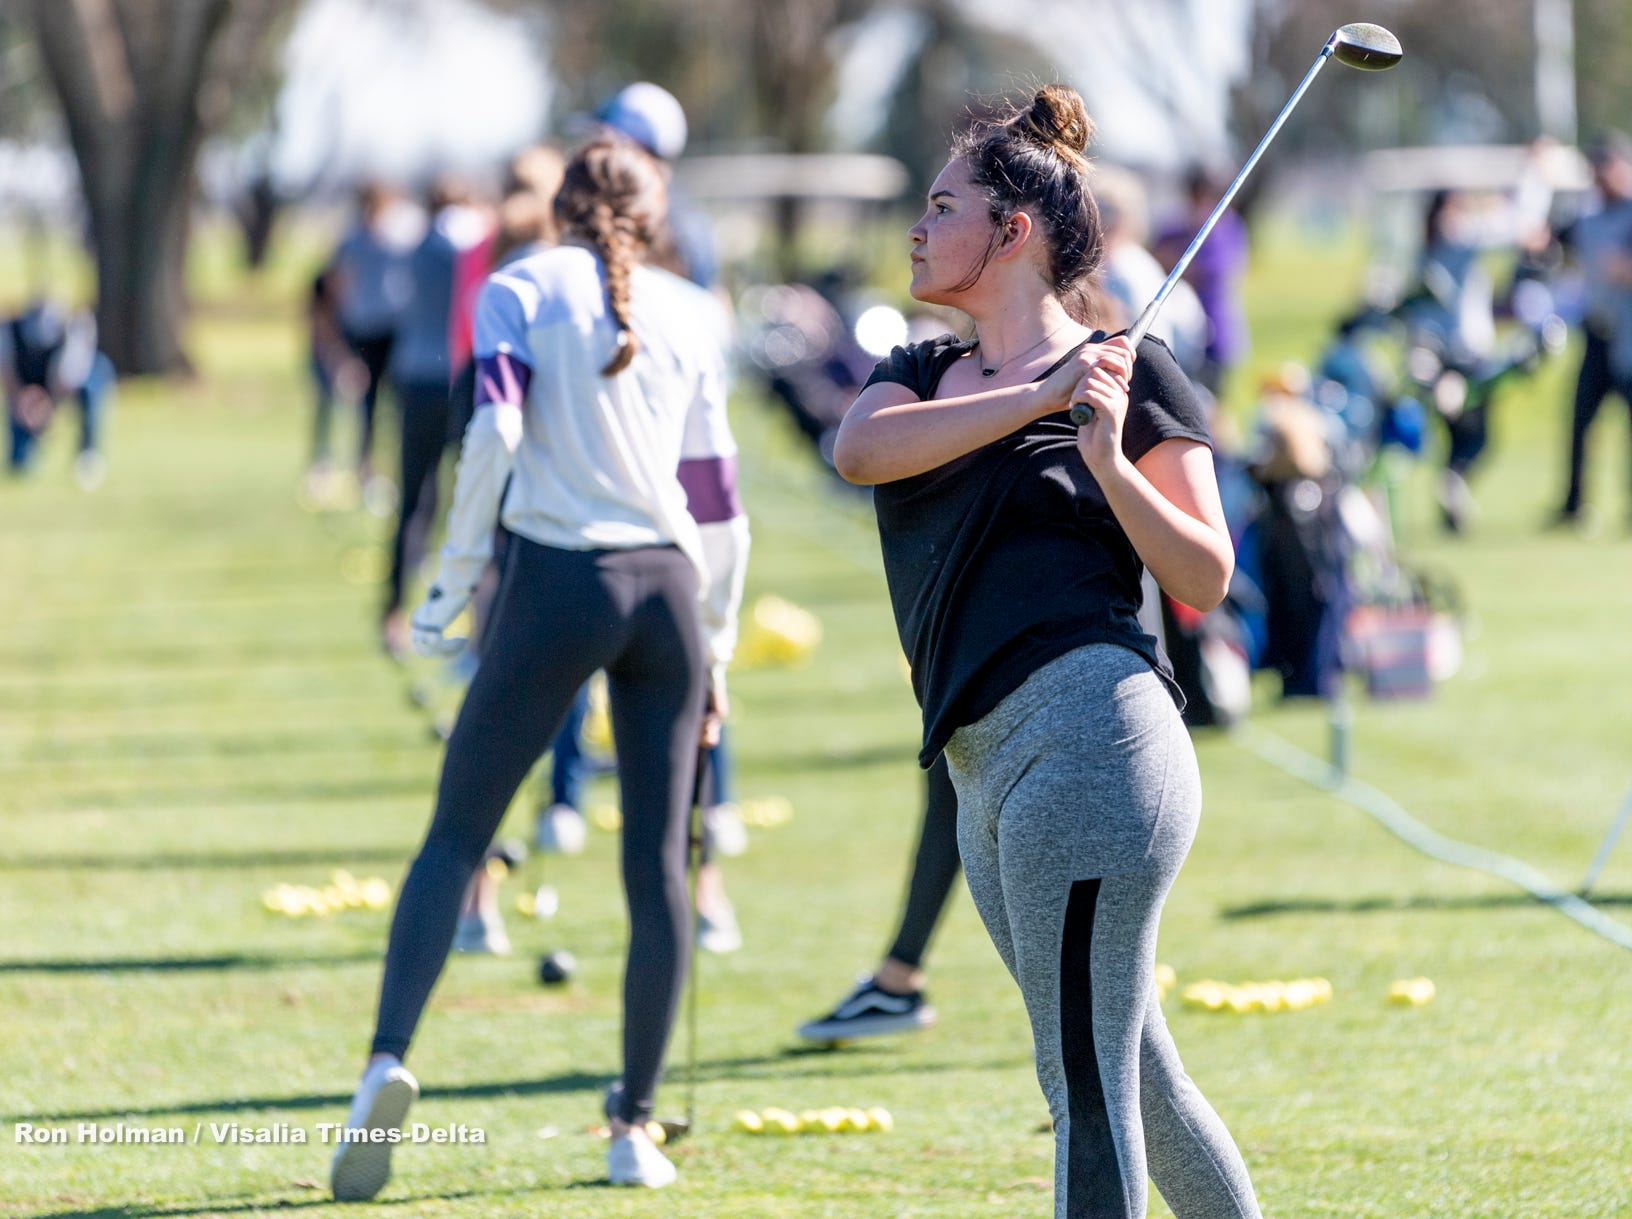 Tulare Western's Sophie Boeve watches her shot during a clinic with training professionals from Backswing Golf Events and Fresno State womenÕs golf coaches on Thursday, February 28, 2019. Organizers held the free event at the Tulare Golf Course to help grow the game of golf in the Central Valley.